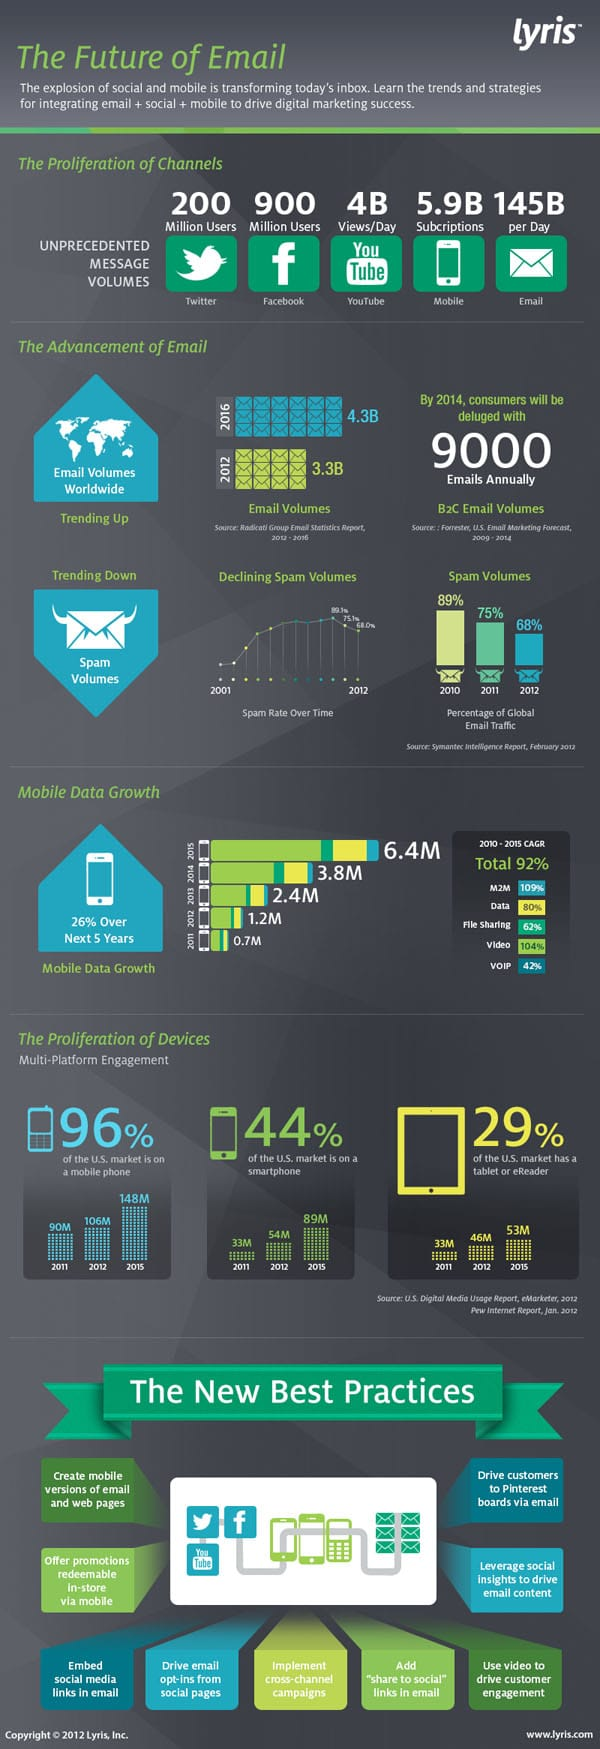 The Future Of Email: Best Practices & Trends [Infographic]